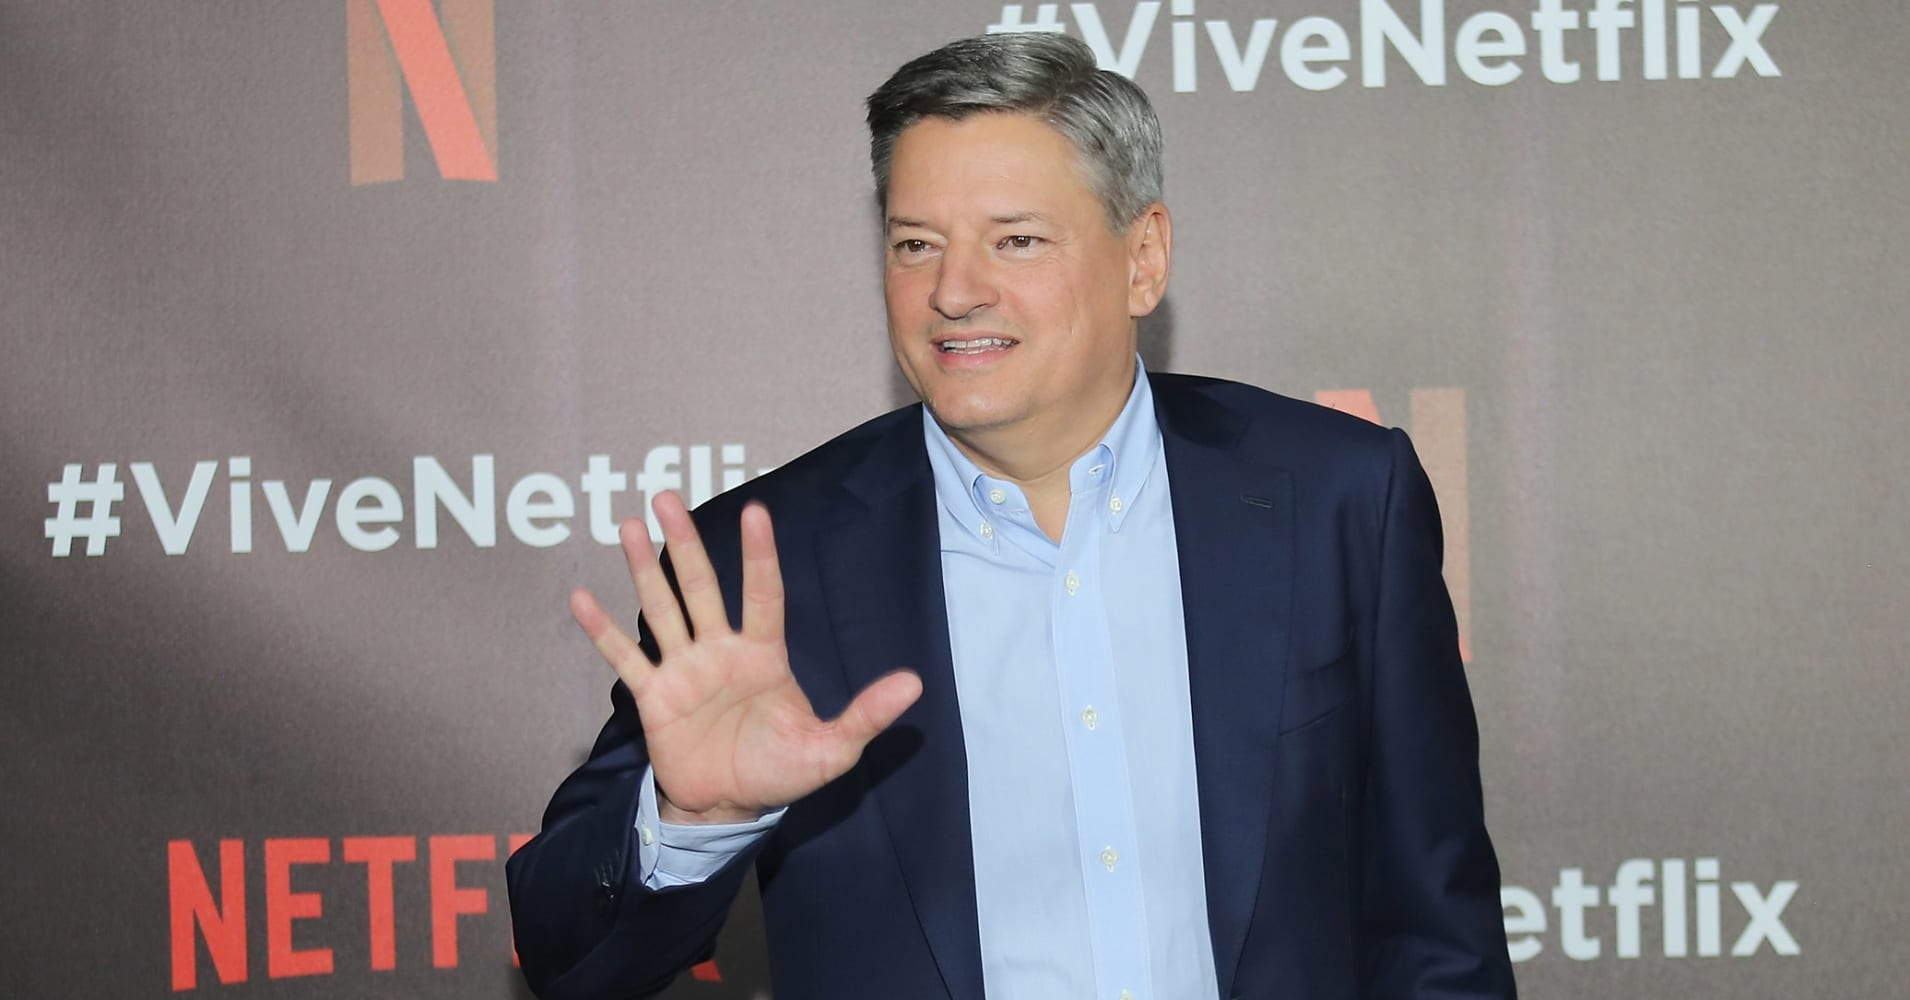 Netflix Continues to Burn Cash at a Record Pace, but Investors Love it